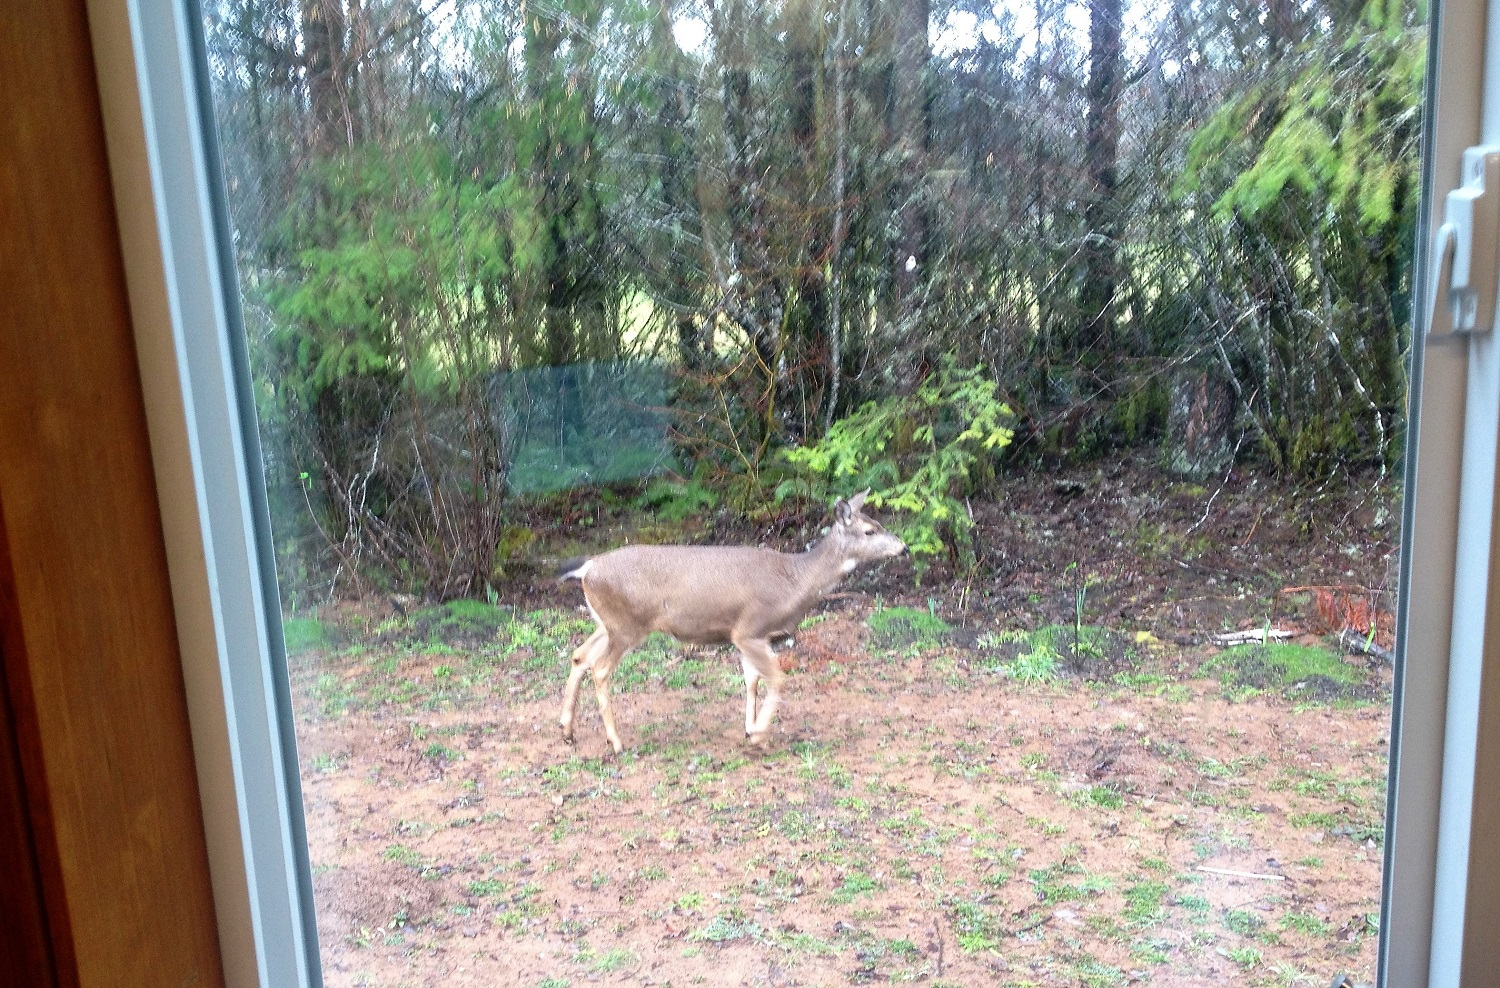 One strolls by while I'm writing